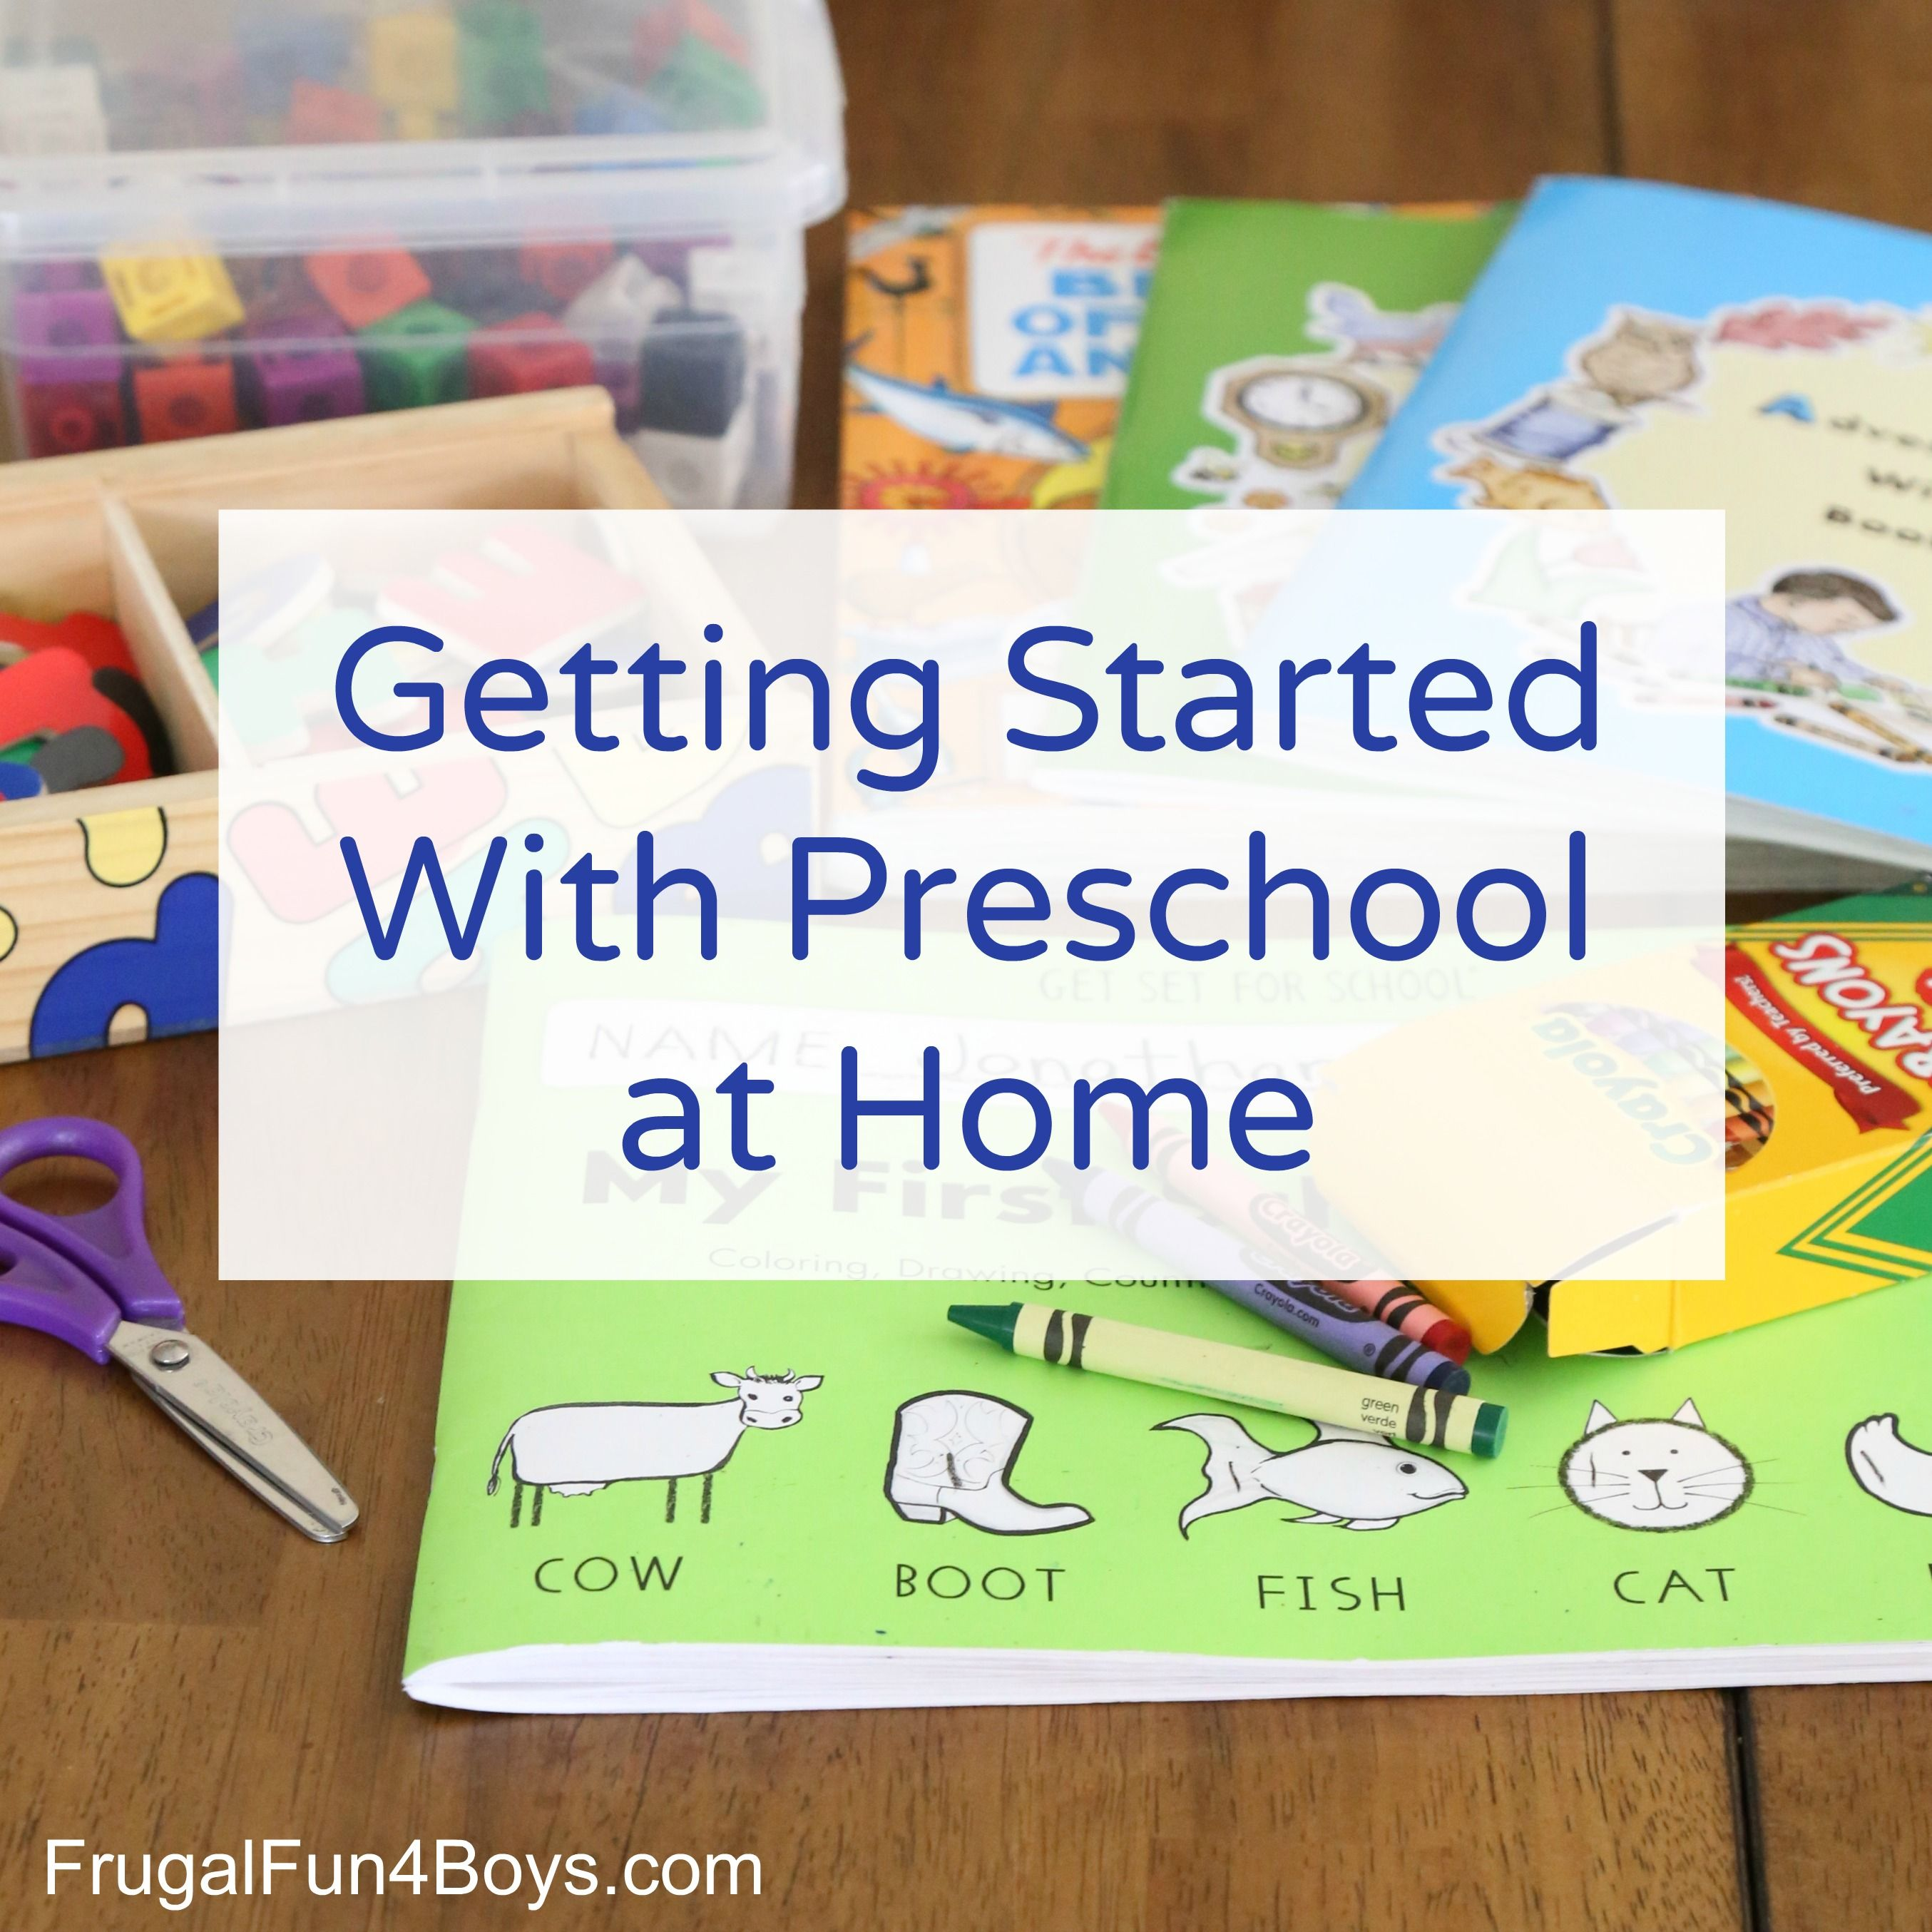 How to Play School at Home photo